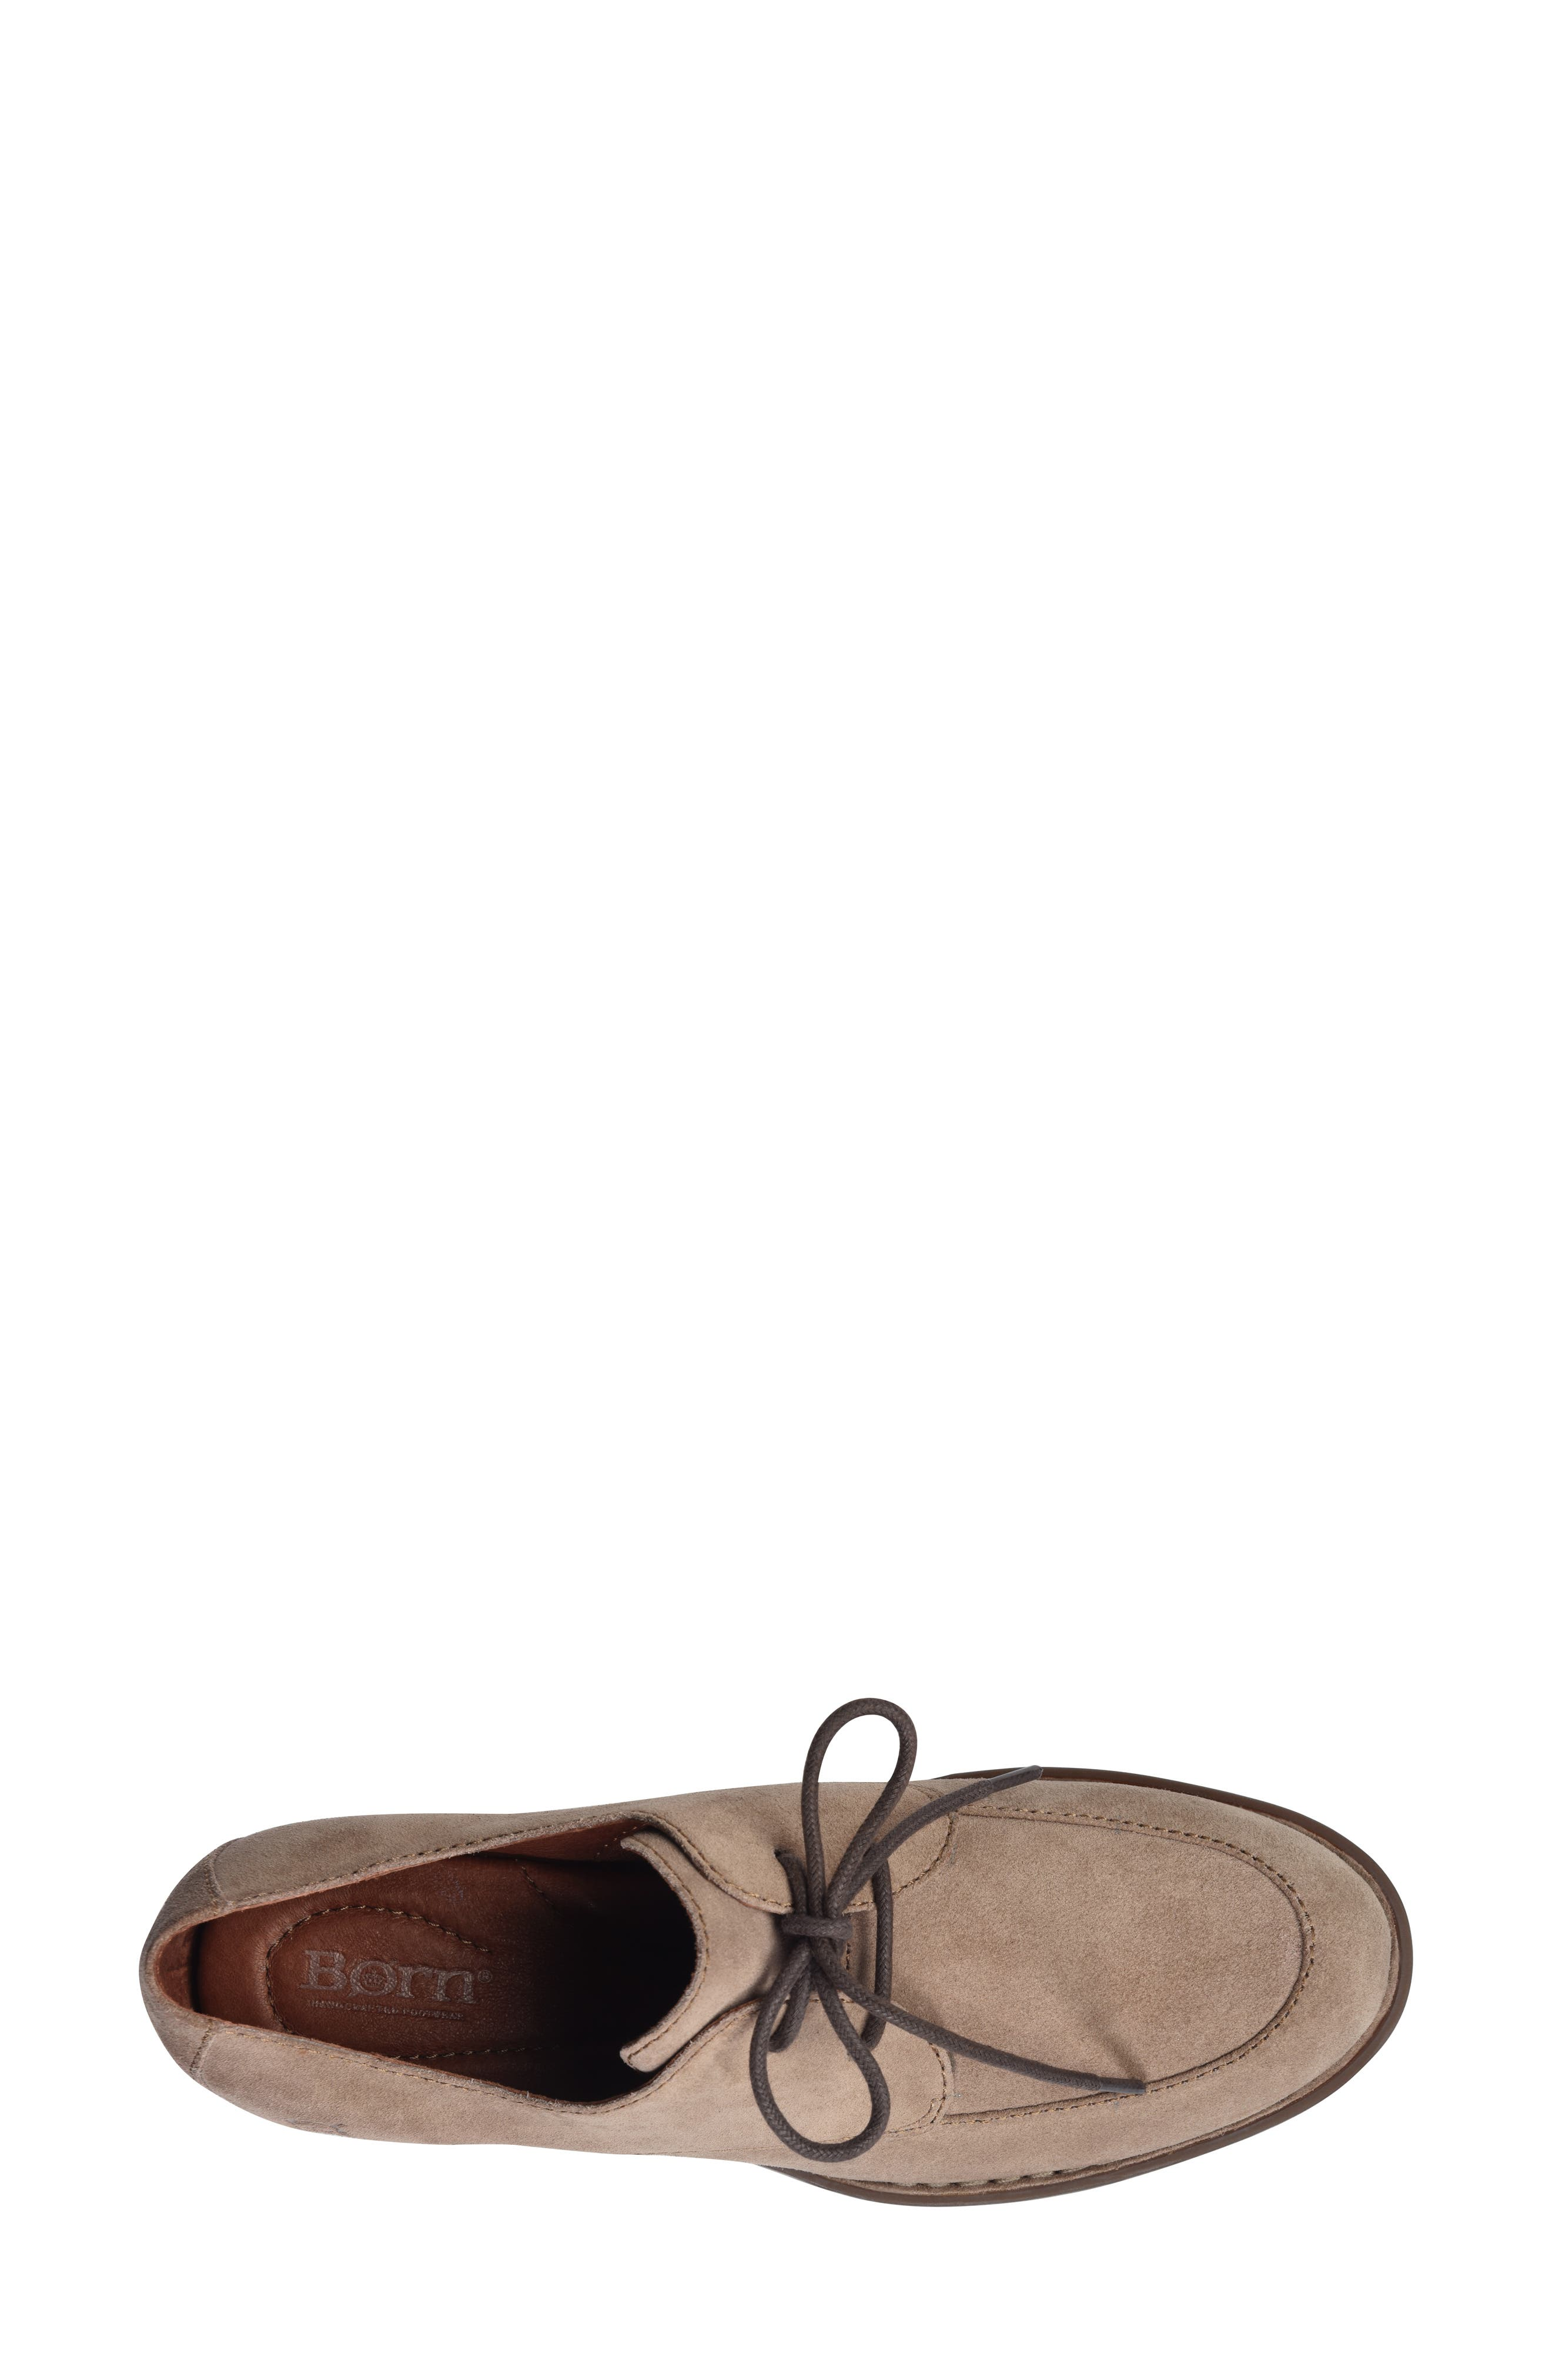 Rora Derby,                             Alternate thumbnail 5, color,                             Taupe Suede